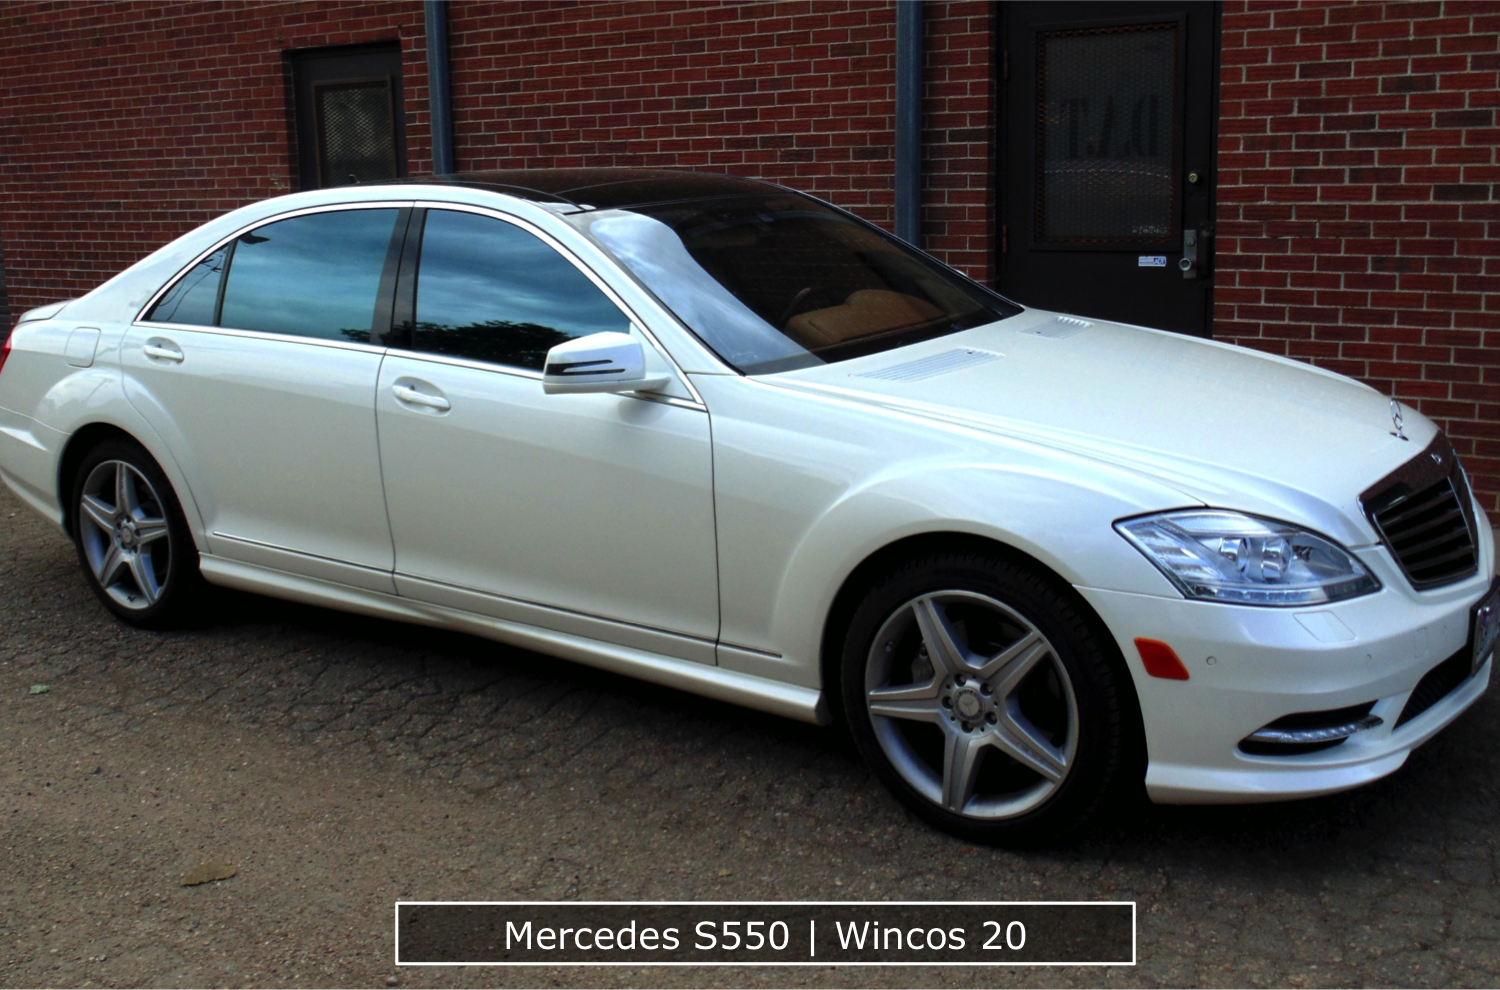 Mercedes With Wincos 20